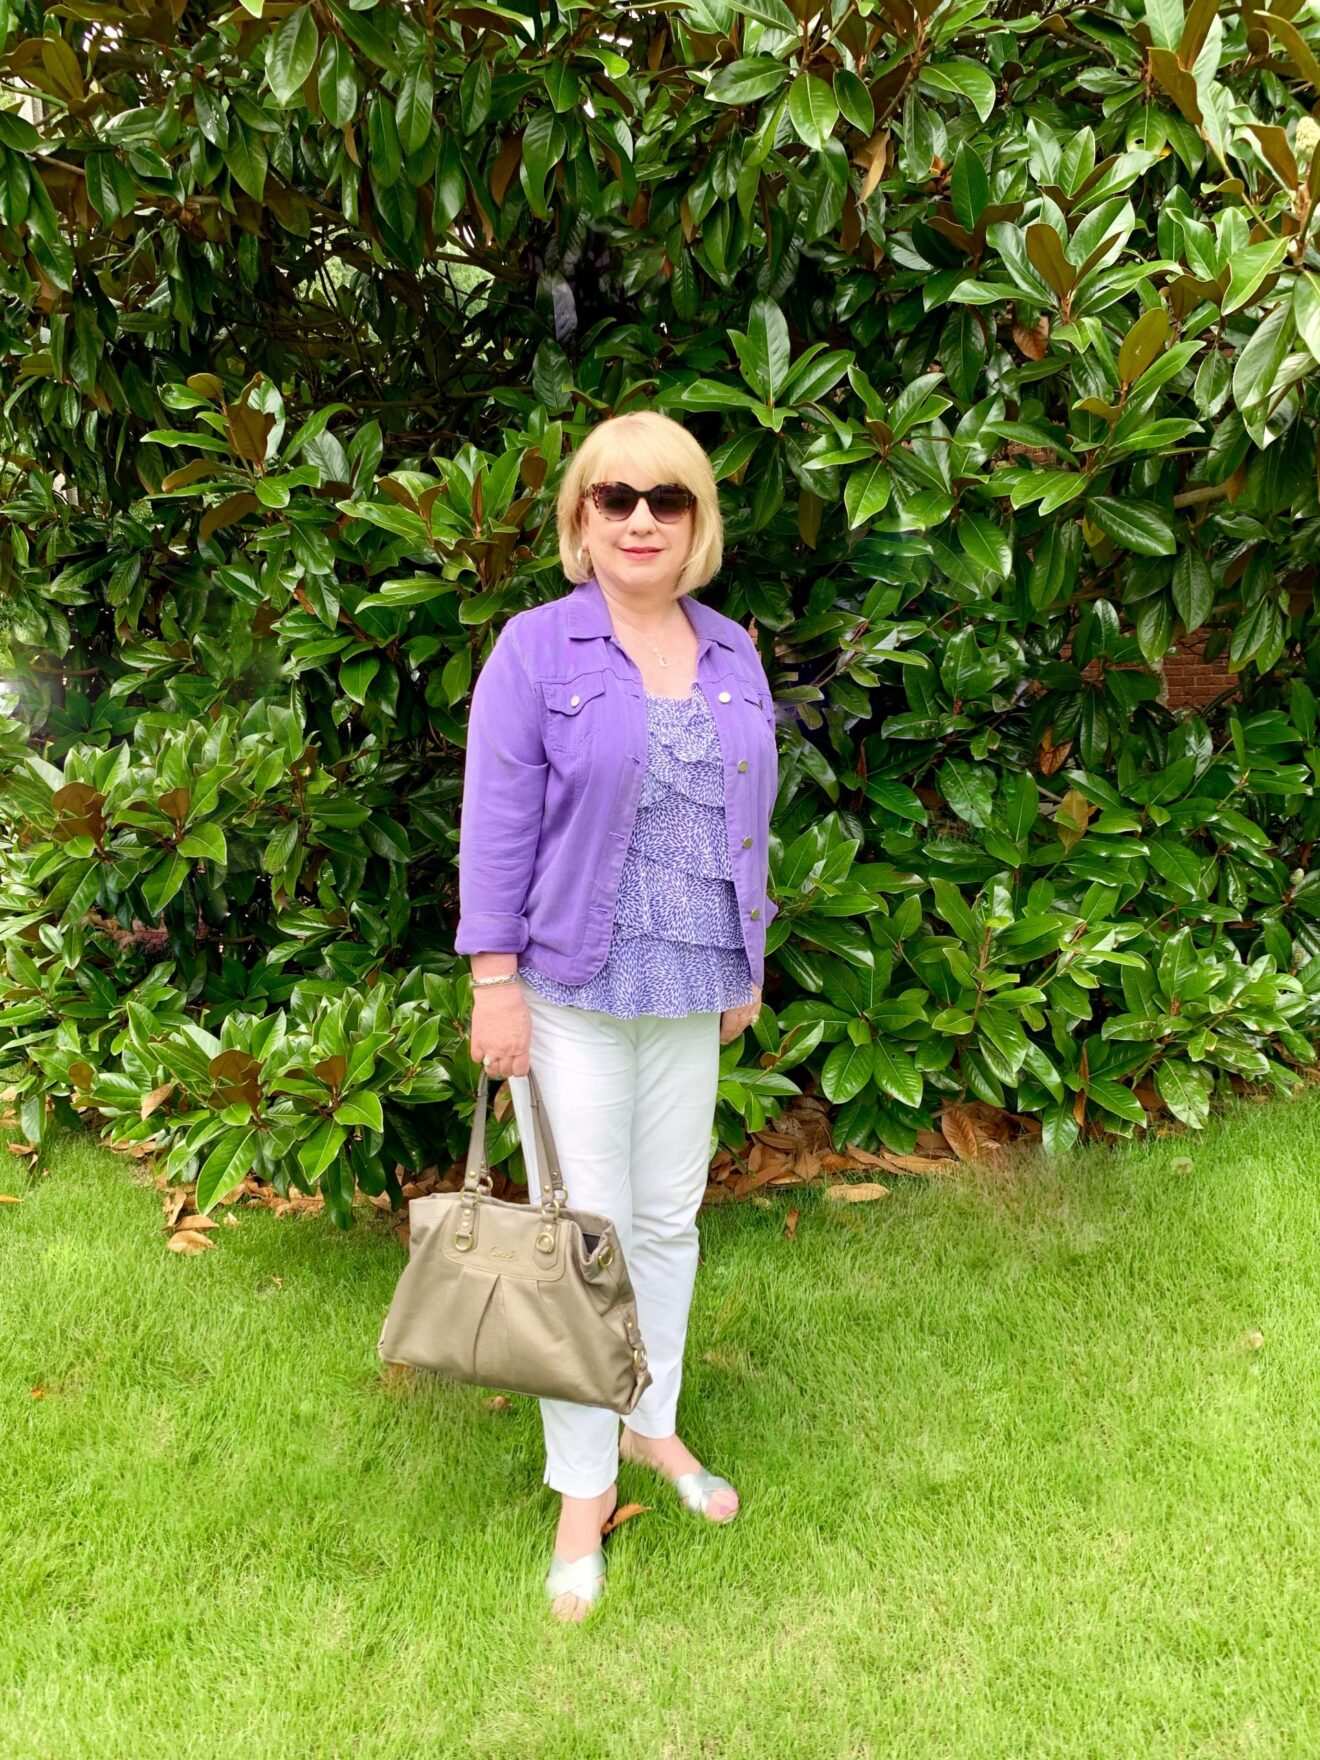 Style Story Interview Classy Colorful Confidence @StyleShennanigans Shannon Holmes Fashion Over 50 60 Confident Feminine Purple Ruffles Outfit Story Behind The Cloth scaled